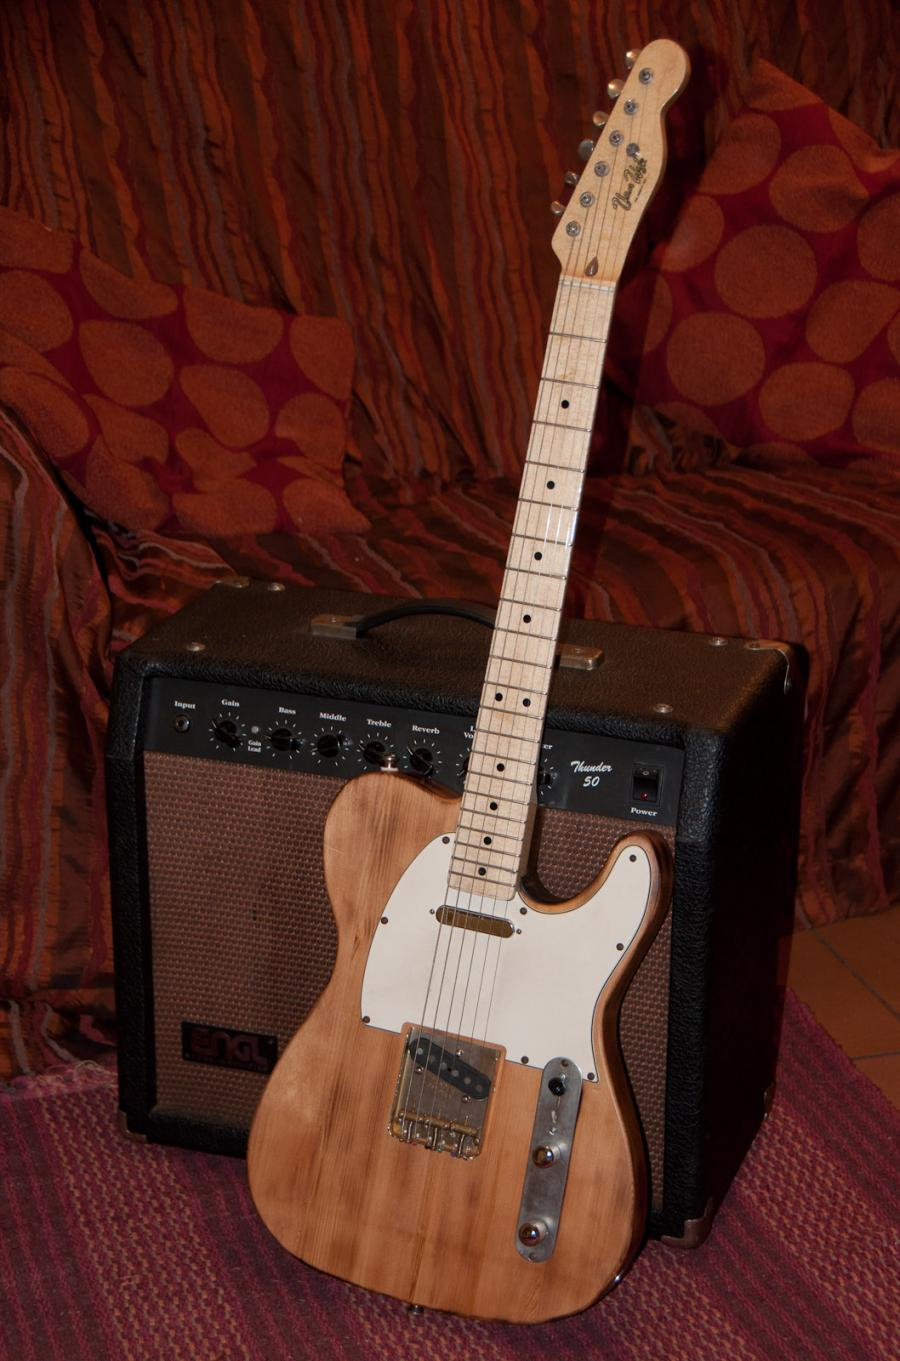 Telecaster Love Thread, No Archtops Allowed-40-jpg